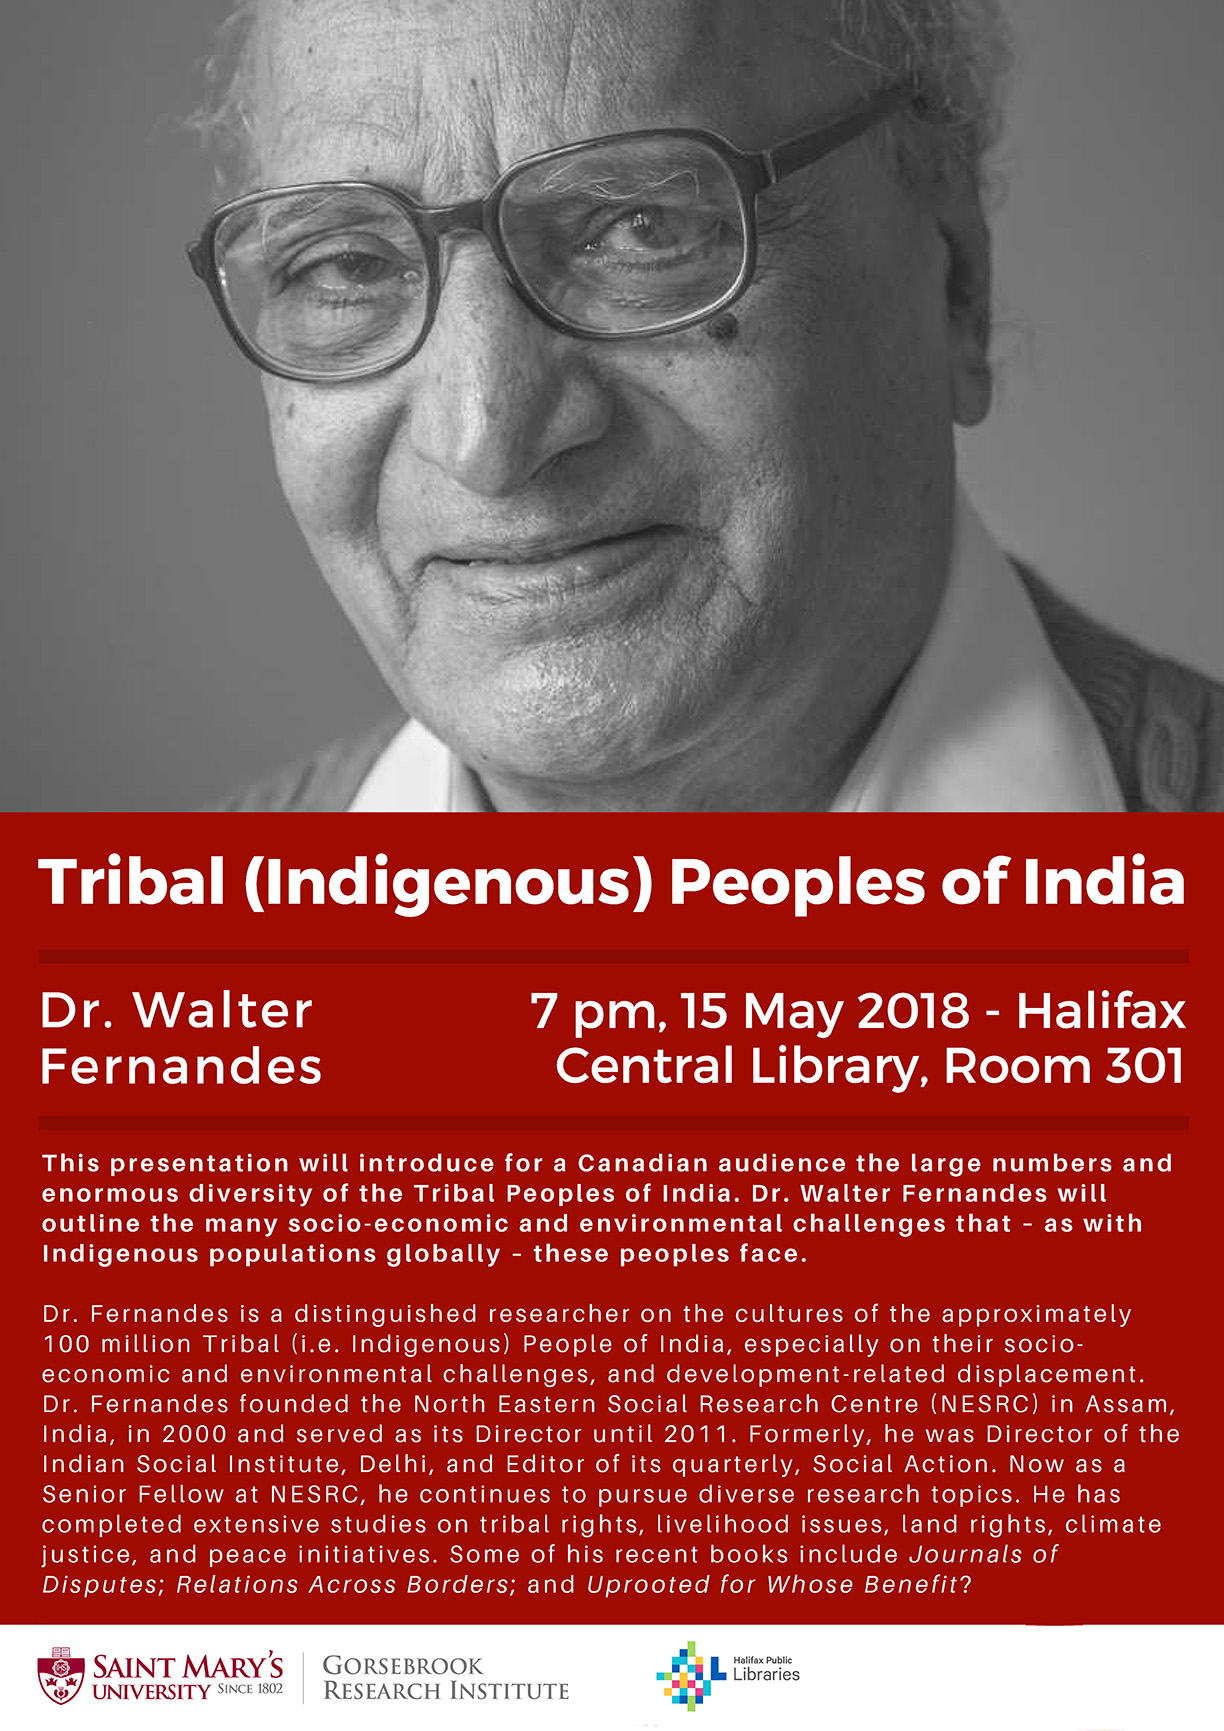 This presentation will introduce for a Canadian audience the large numbers and enormous diversity of the Tribal Peoples of India.Dr. Walter Fernandes will outline the many socio-economic and environmental challenges that - as with Indigenous populations globally - these peoples face.    Dr. Fernandes is a distinguished researcher on the cultures of the approximately 100 million Tribal (i.e. indigenous) people of India, especially on their socio-economic and environmental challenges, and development-related displacement. Dr. Fernandes founded the North Eastern Social Research Centre (NESRC) in Assam, India, in 2000 and served as its Director until 2011. Formerly, he was Director if the Indian Social Institute, Delhi, and Editor of its quarterly, Social Action. Now as a Senior Fellow at NESRC, he continues to pursue diverse research topics. He has completed extensive studies on tribal rights, livelihood issues, land rights, climate justice, and peace initiatives.some of his recent books include  Journals of Disputes ;  Relations Across Borders ; and  Uprooted for Whose Benefit .